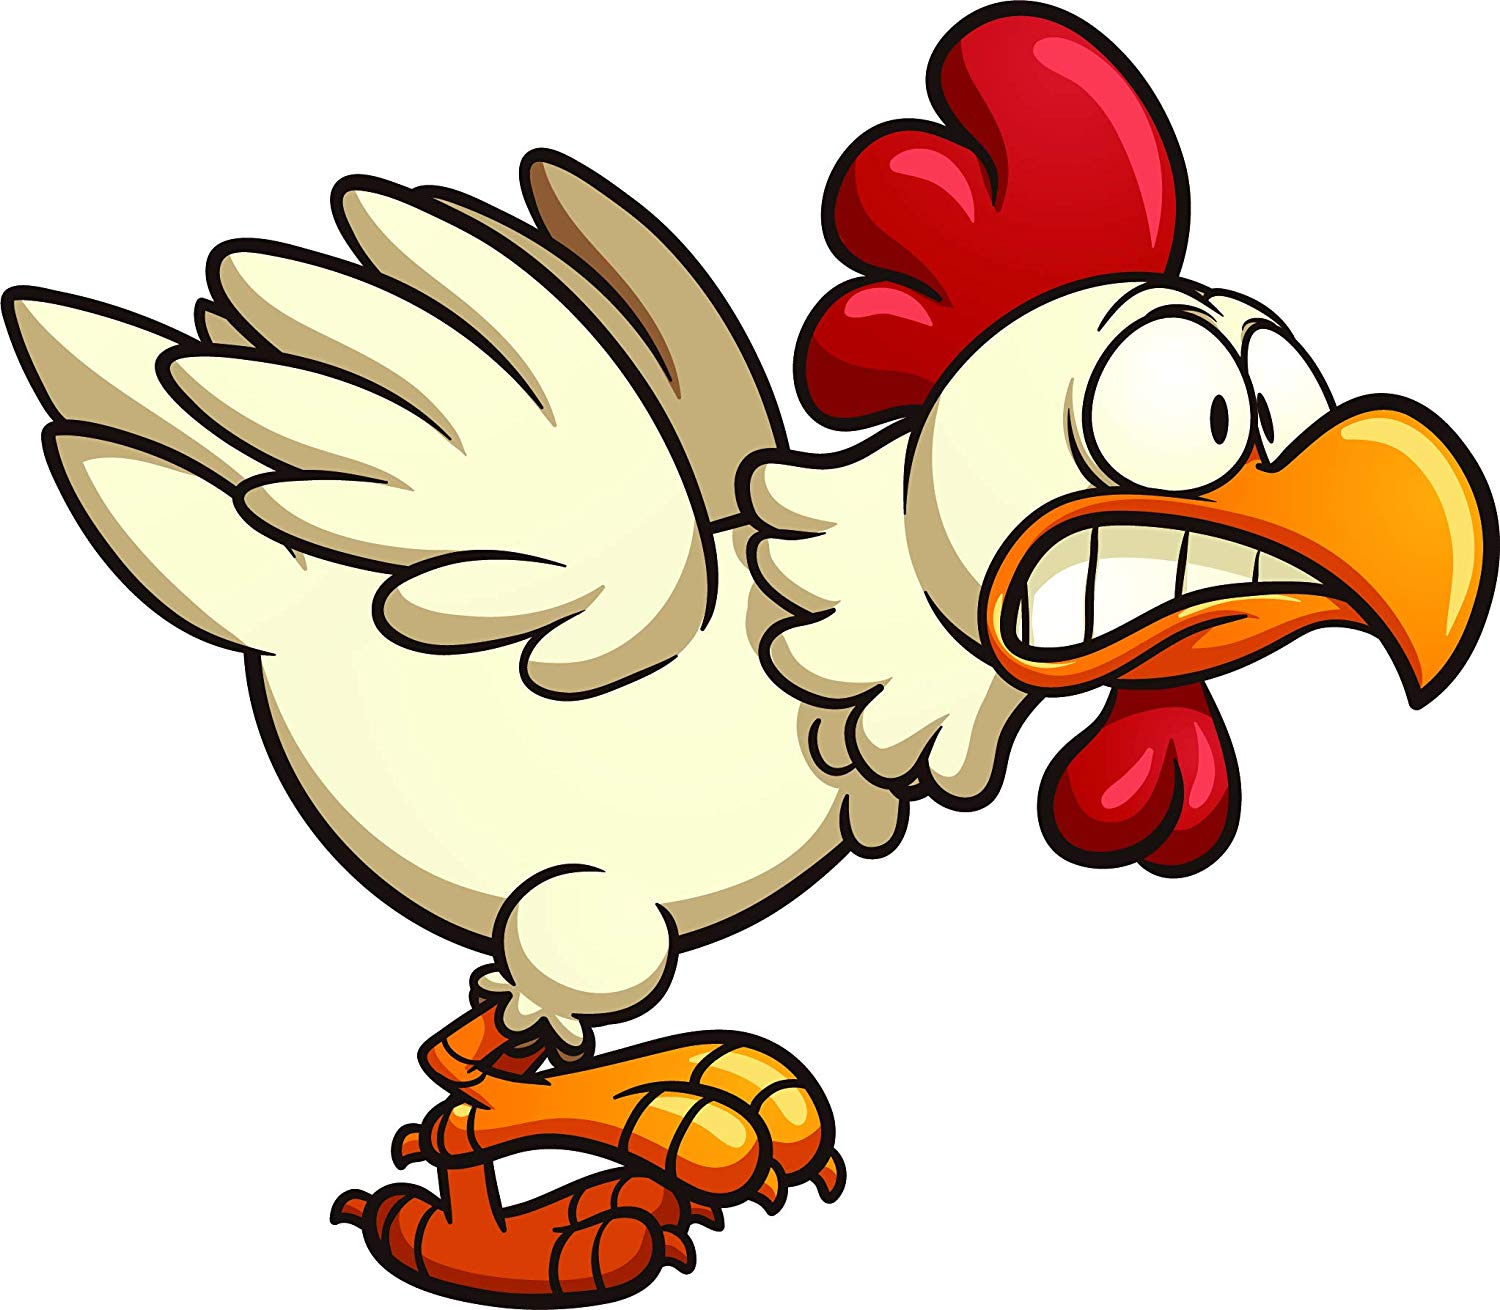 Scared chicken clipart clip transparent stock Amazon.com: Crazy Silly Running Scared Chicken Cartoon Vinyl ... clip transparent stock